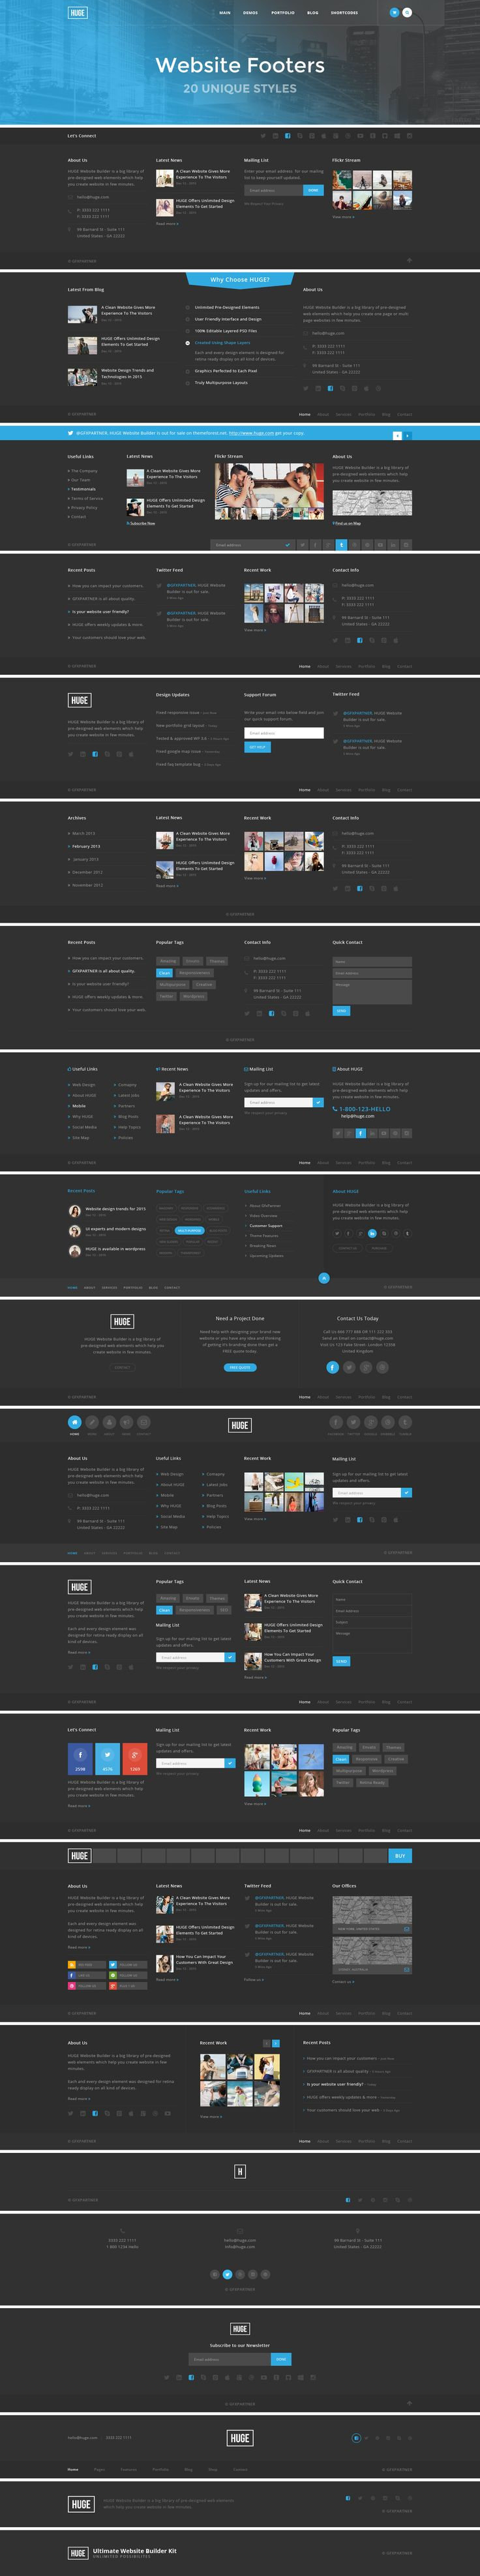 HUGE - PSD Website Builder